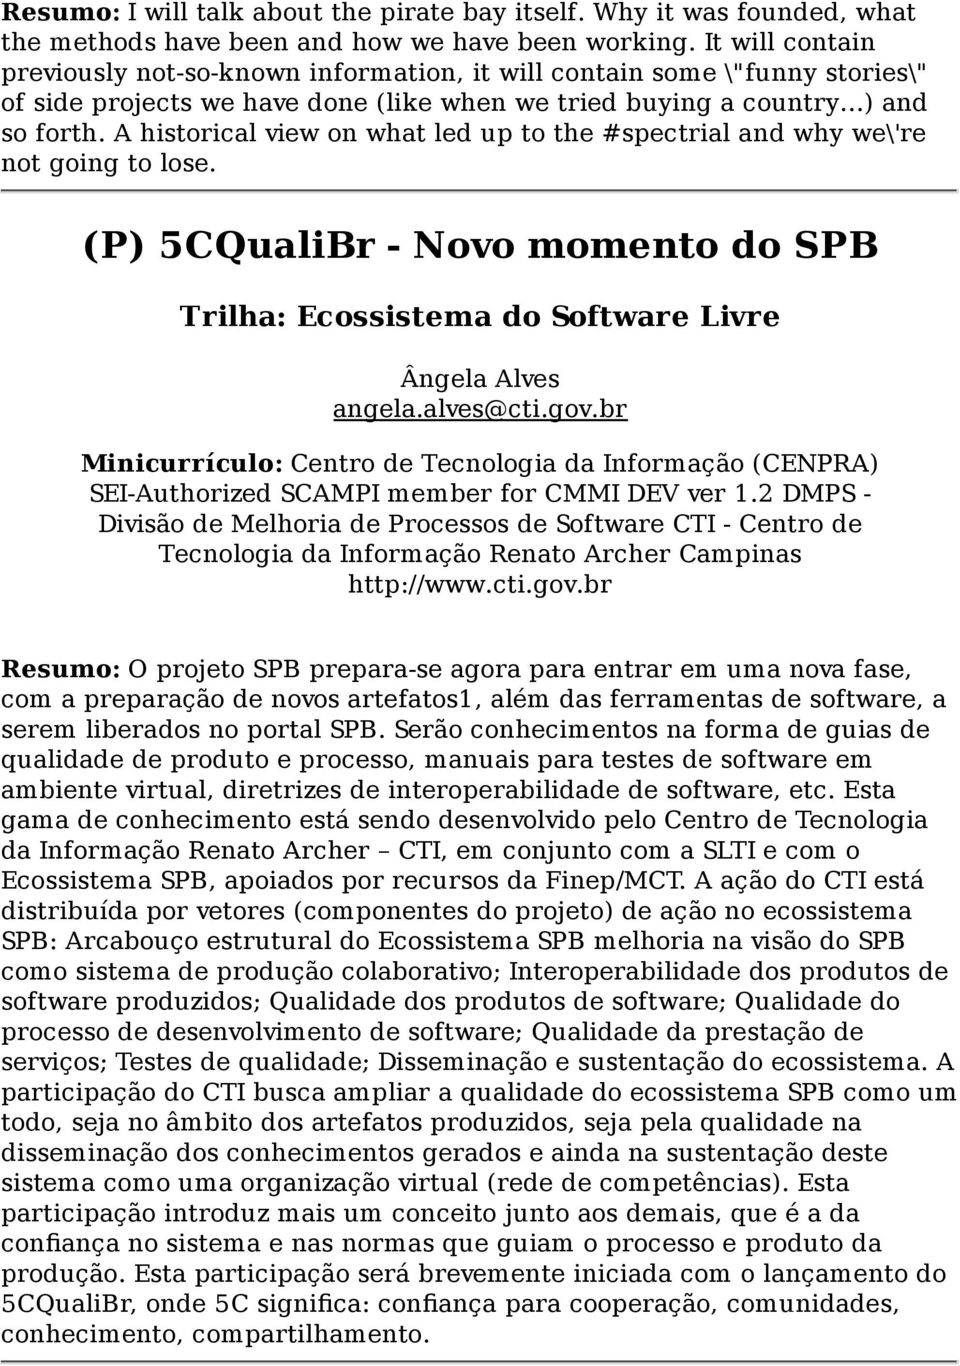 A historical view on what led up to the #spectrial and why we\'re not going to lose. (P) 5CQualiBr - Novo momento do SPB Trilha: Ecossistema do Software Livre Ângela Alves angela.alves@cti.gov.